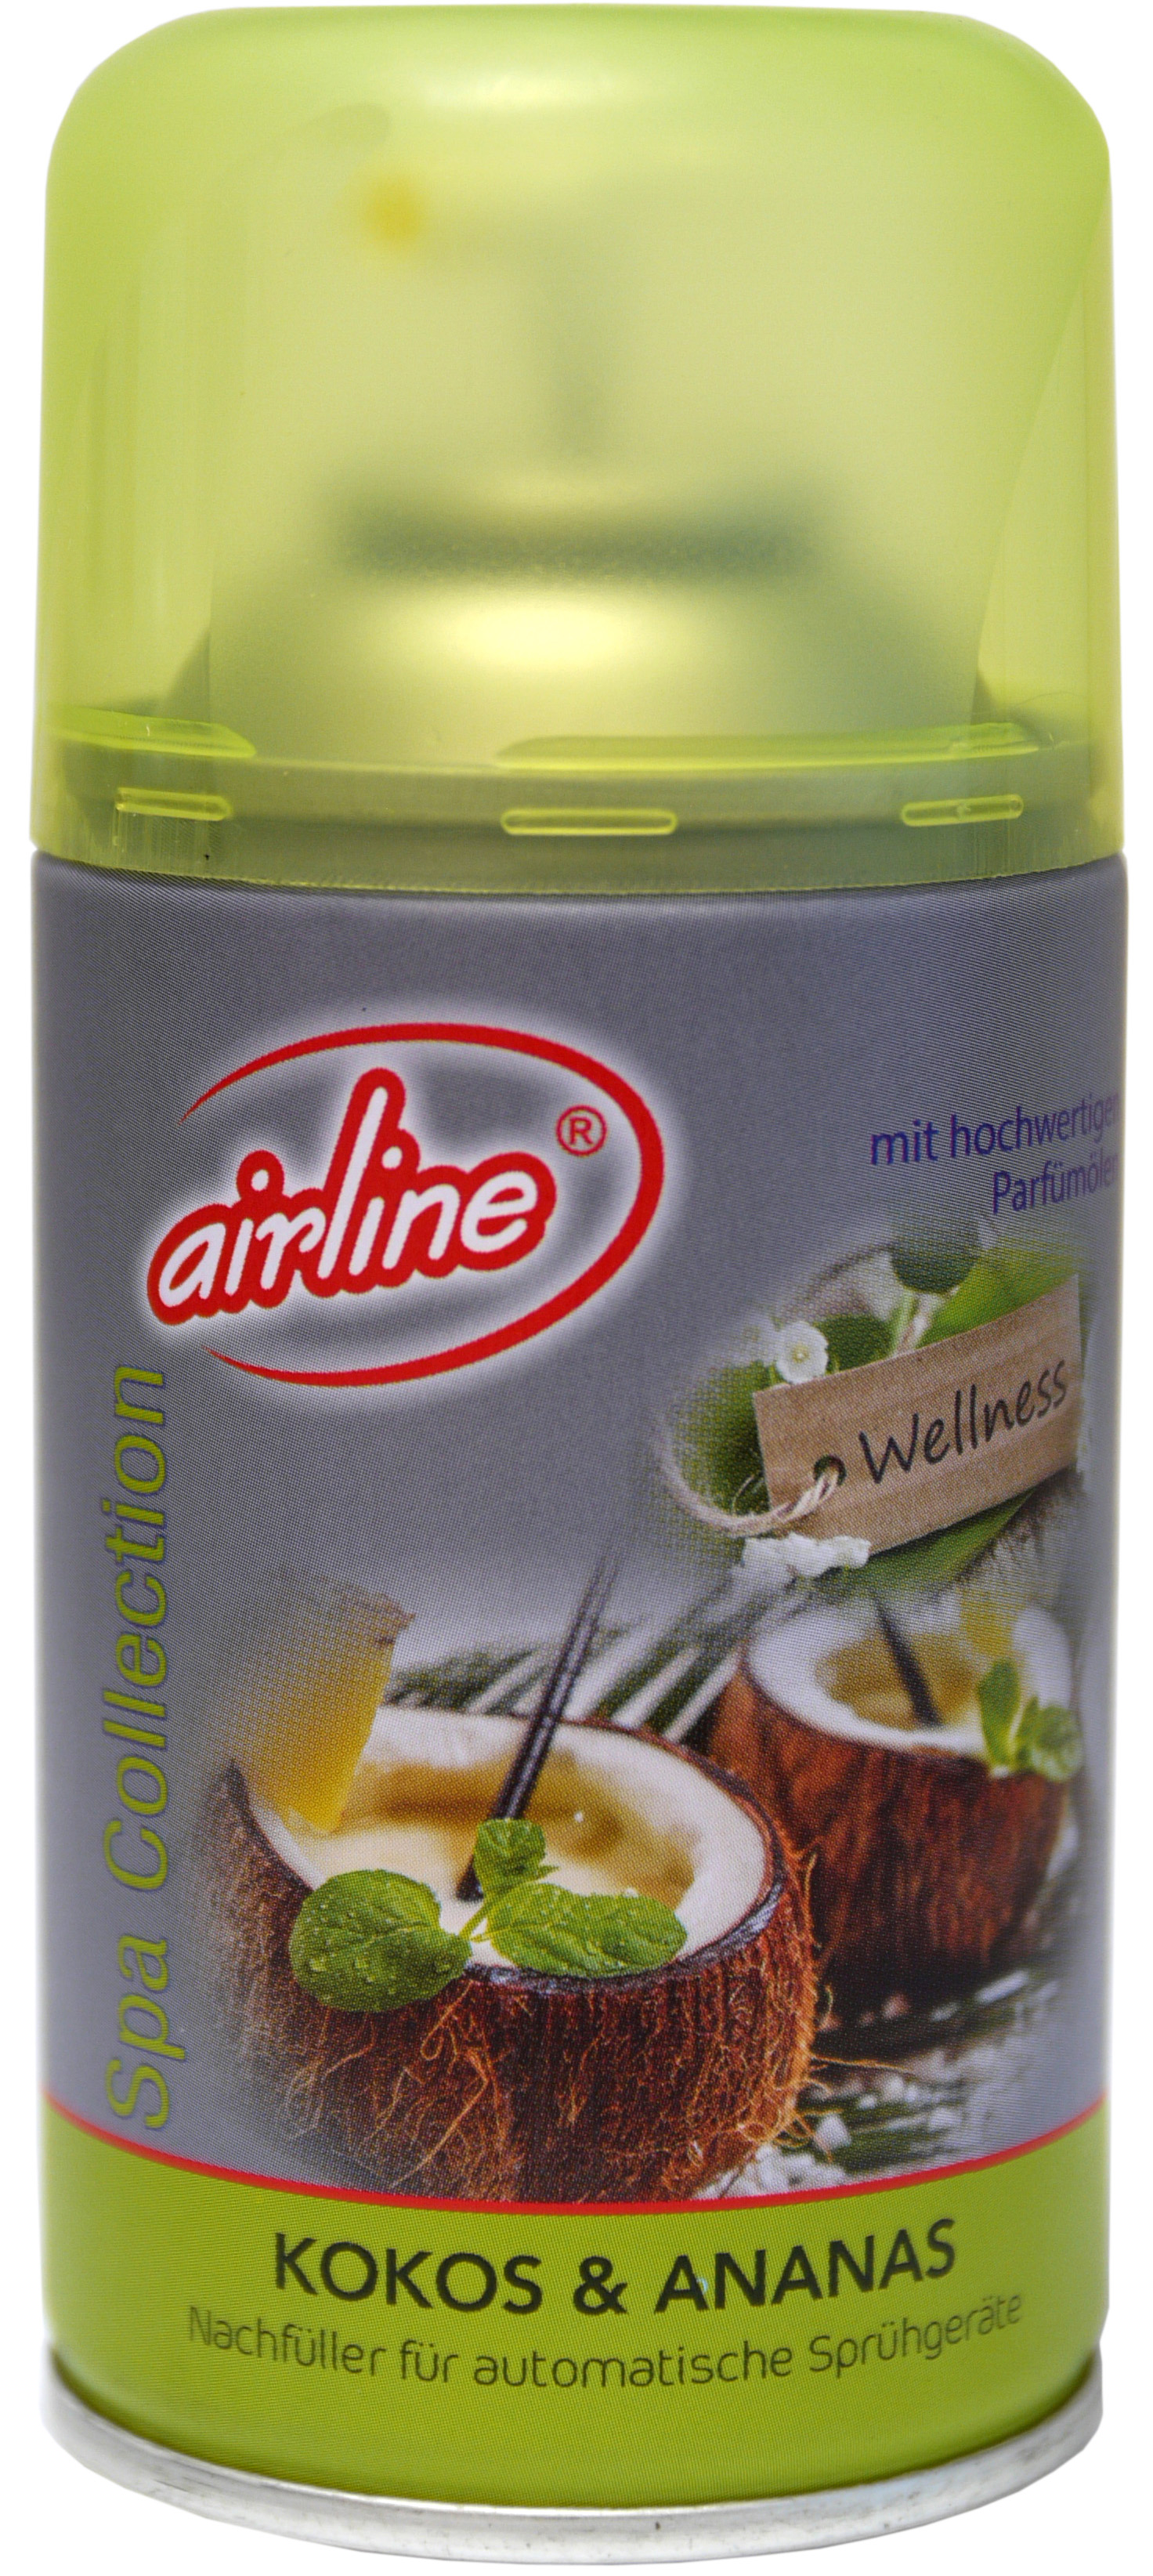 00520 - airline Spa Collection Kokos & Ananas Nachfüllkartusche 250 ml